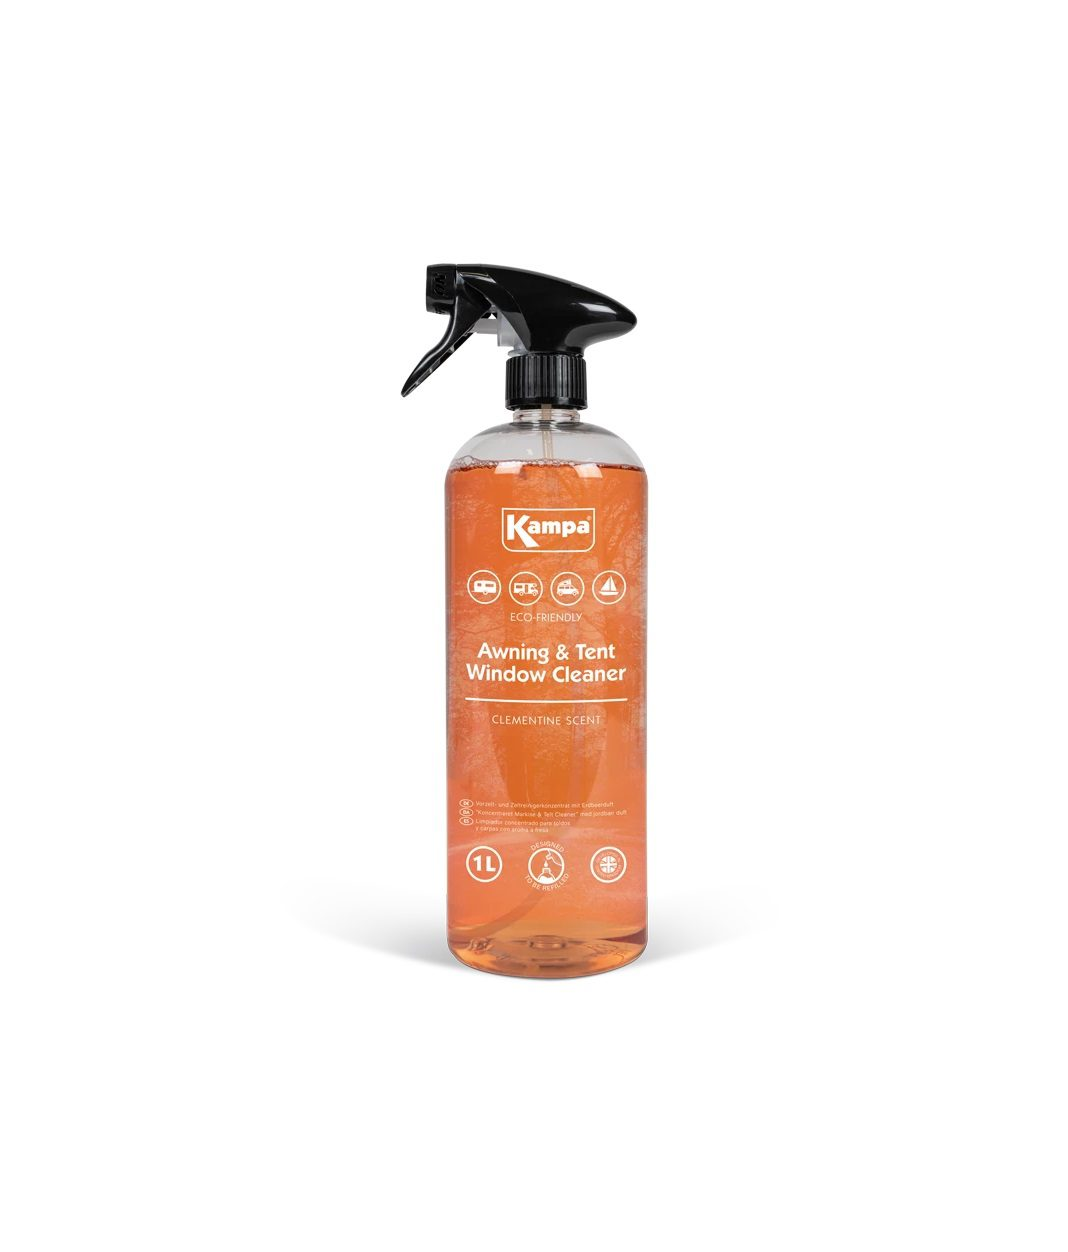 awning and tent window cleaner bottle